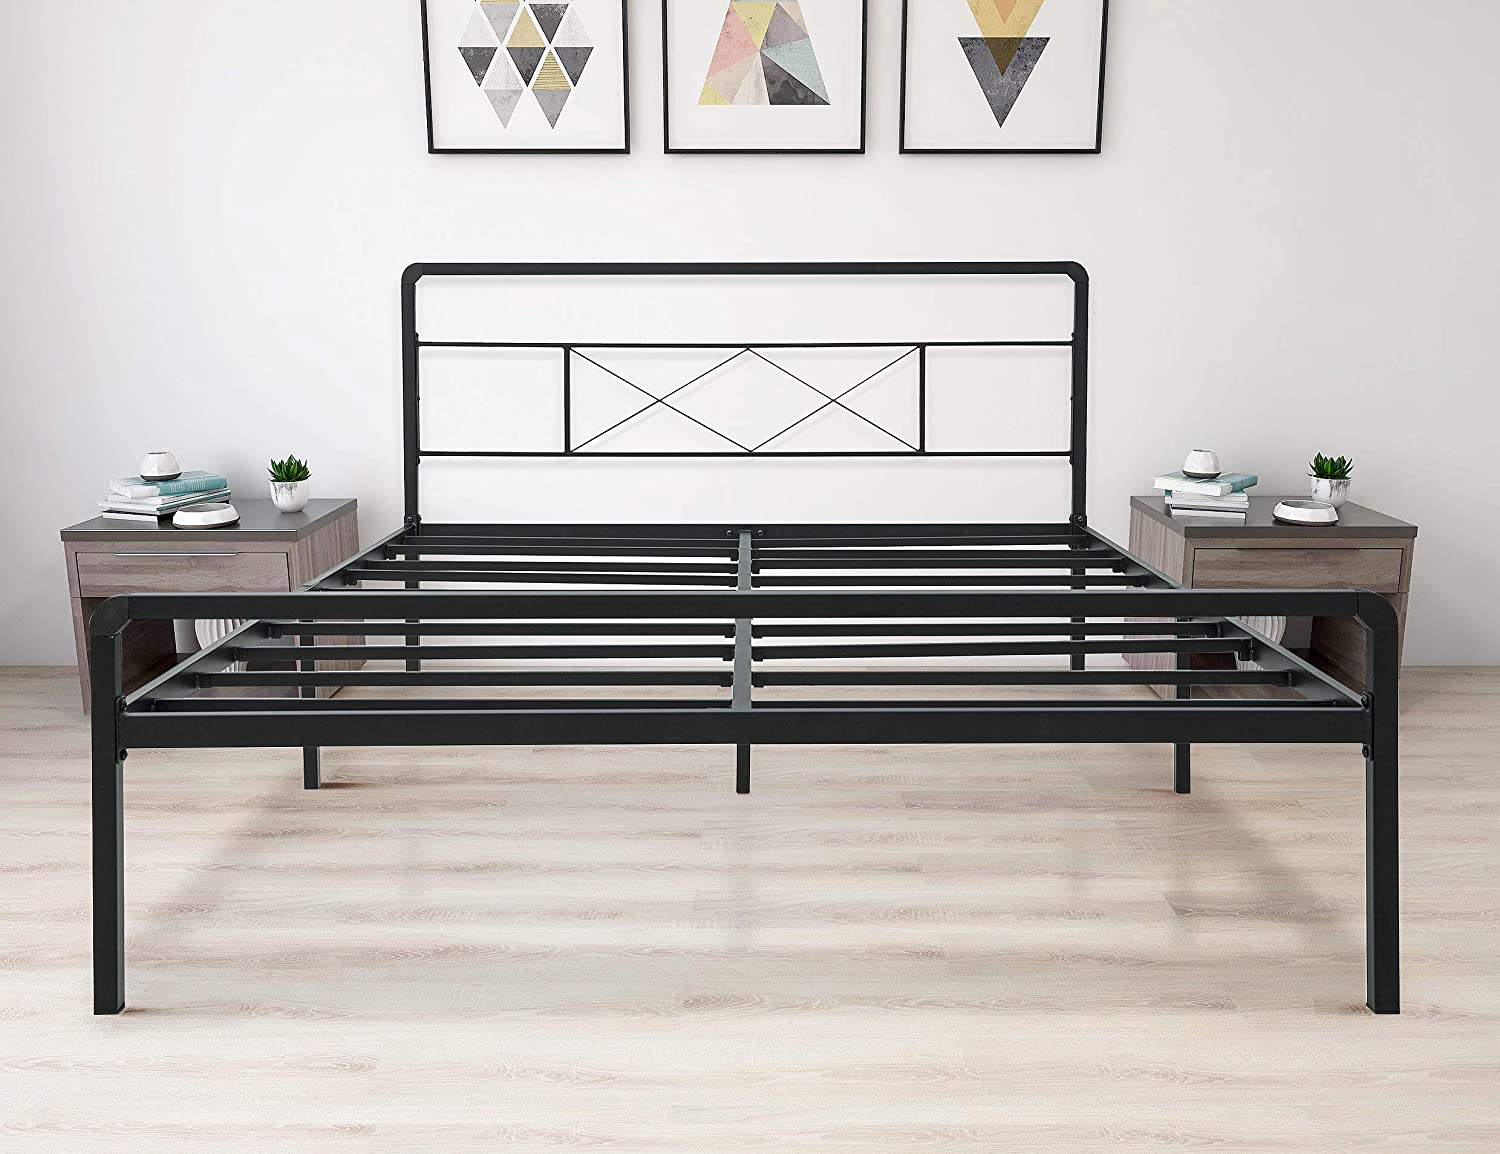 zizin Full Bed Frame with Headboard and Footboard Heavy Duty Metal Platform Base No Box Spring Needed Noise-Free Easy Assembly